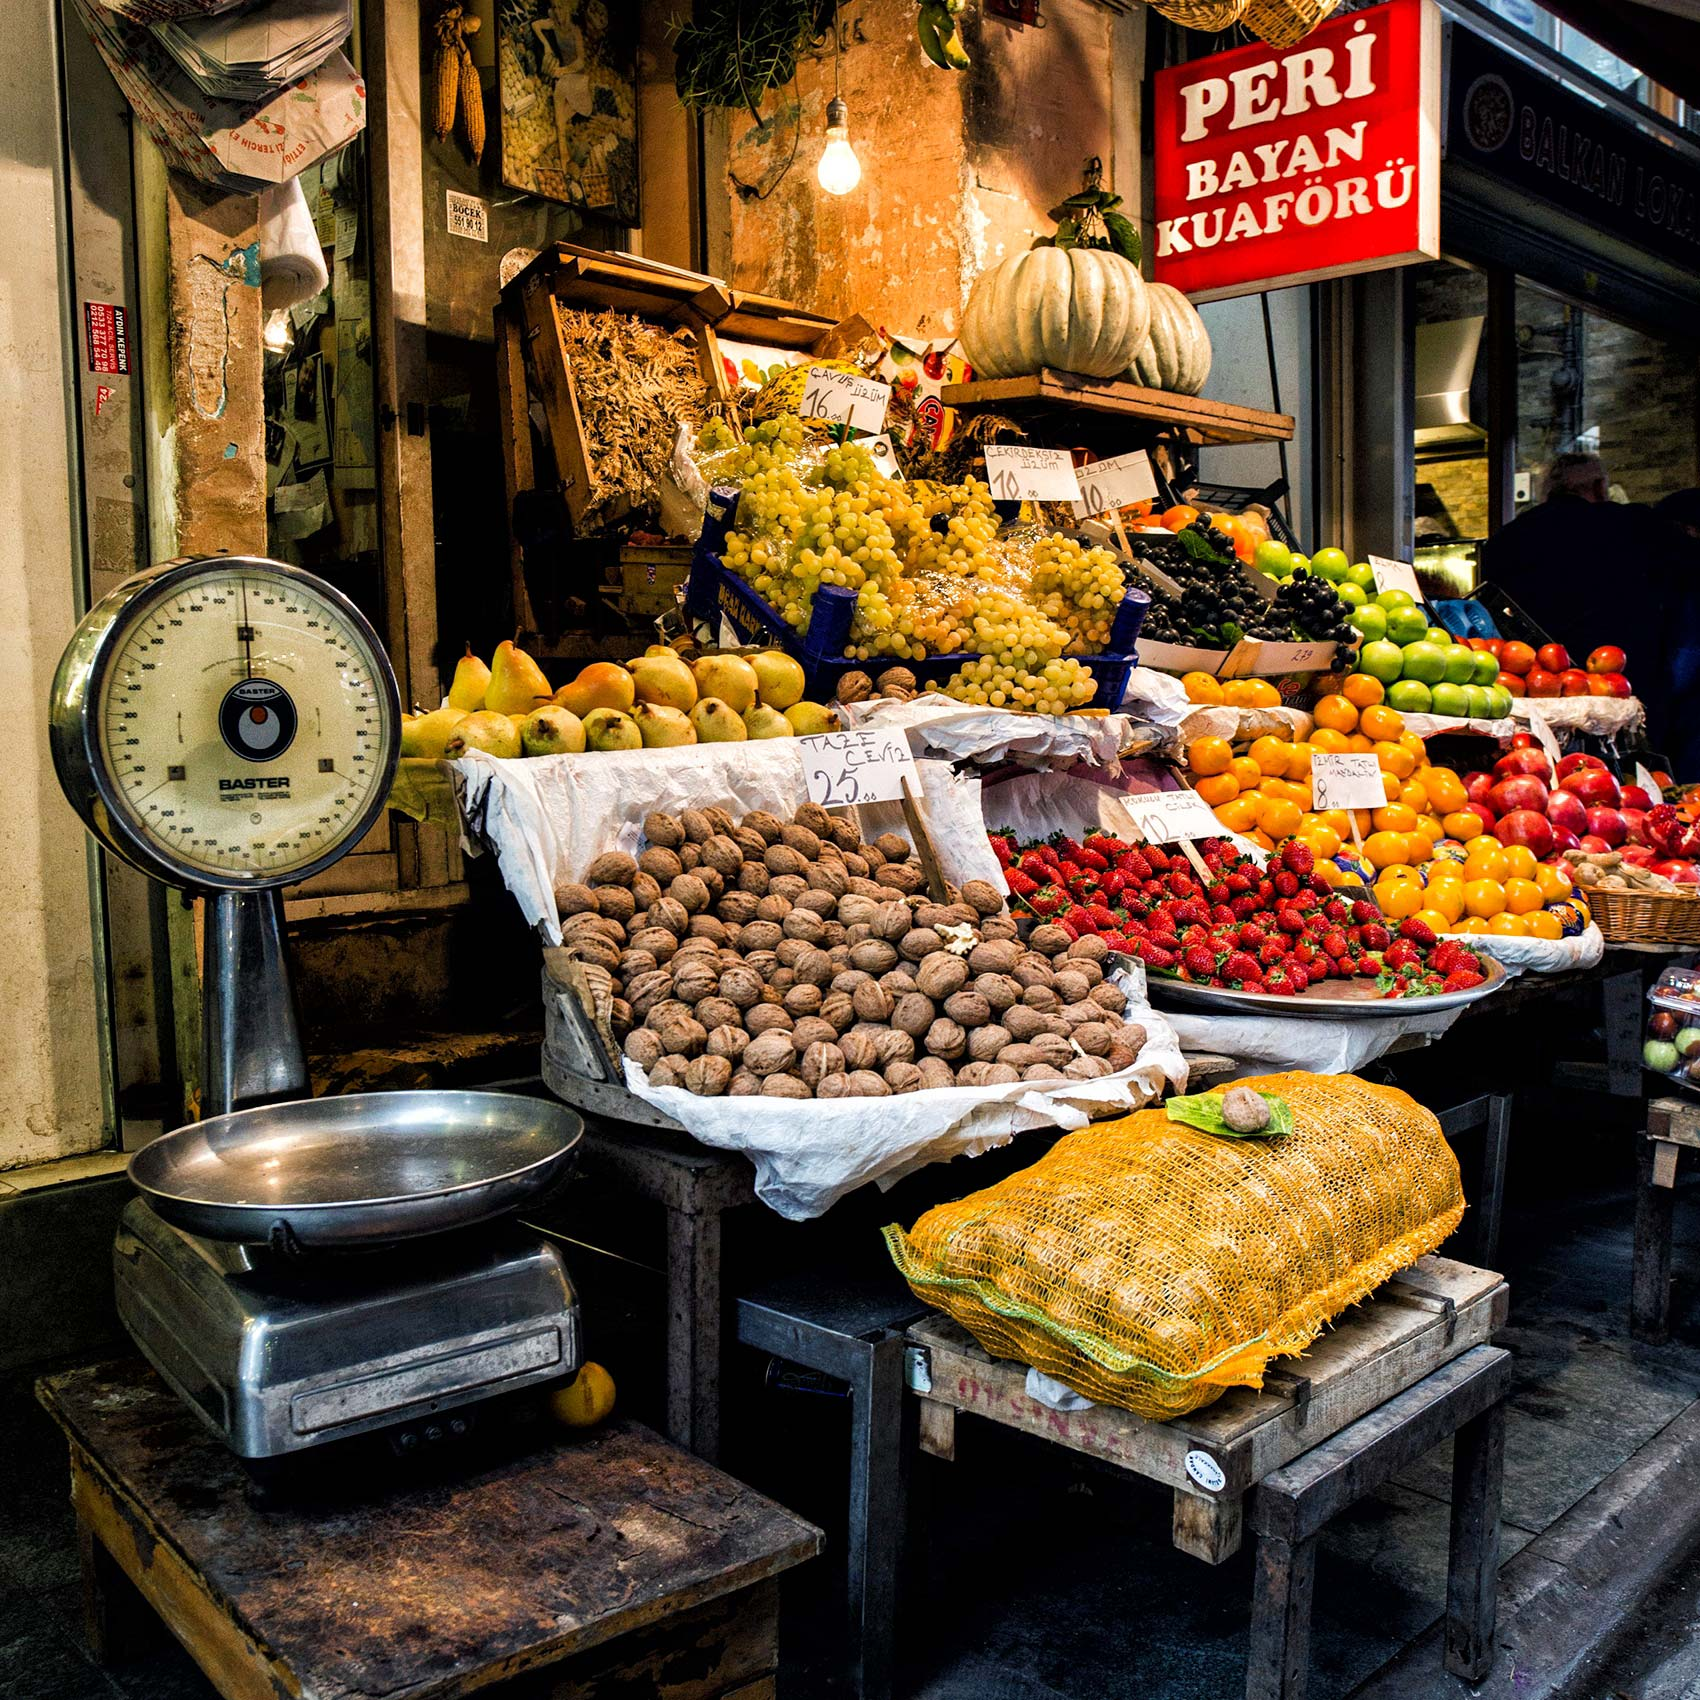 a-pretty-fruit-stall-with-an-old-weighing-scale-outside-in-istanbul-turkey